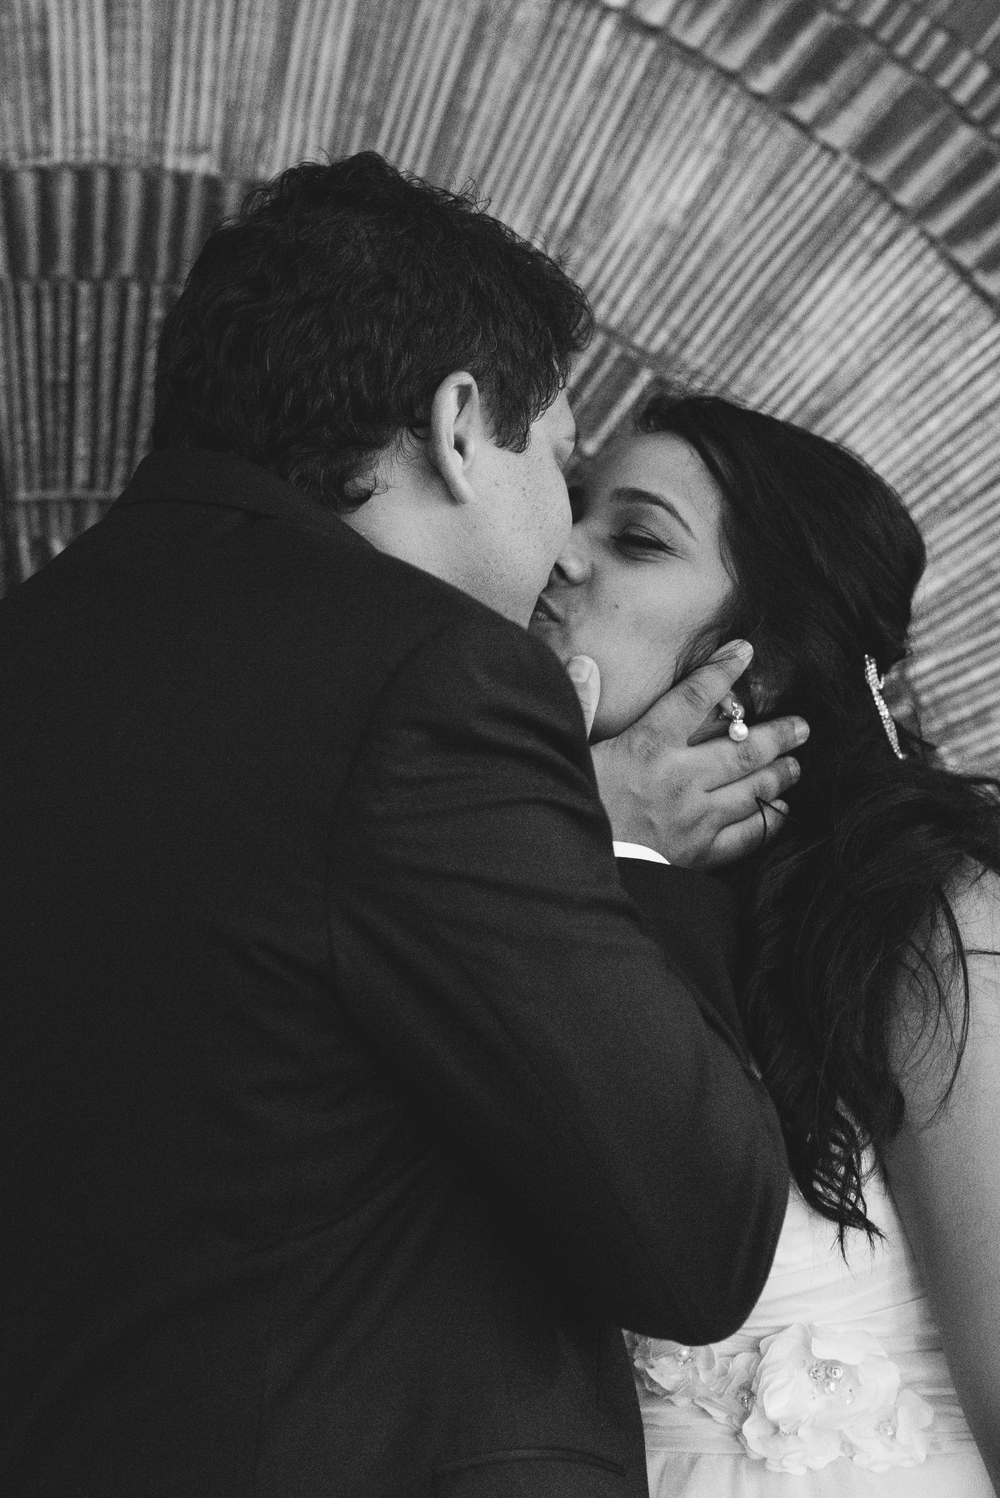 Siebel_Wedding_Black_&_White_High_Res_THP-692.jpg